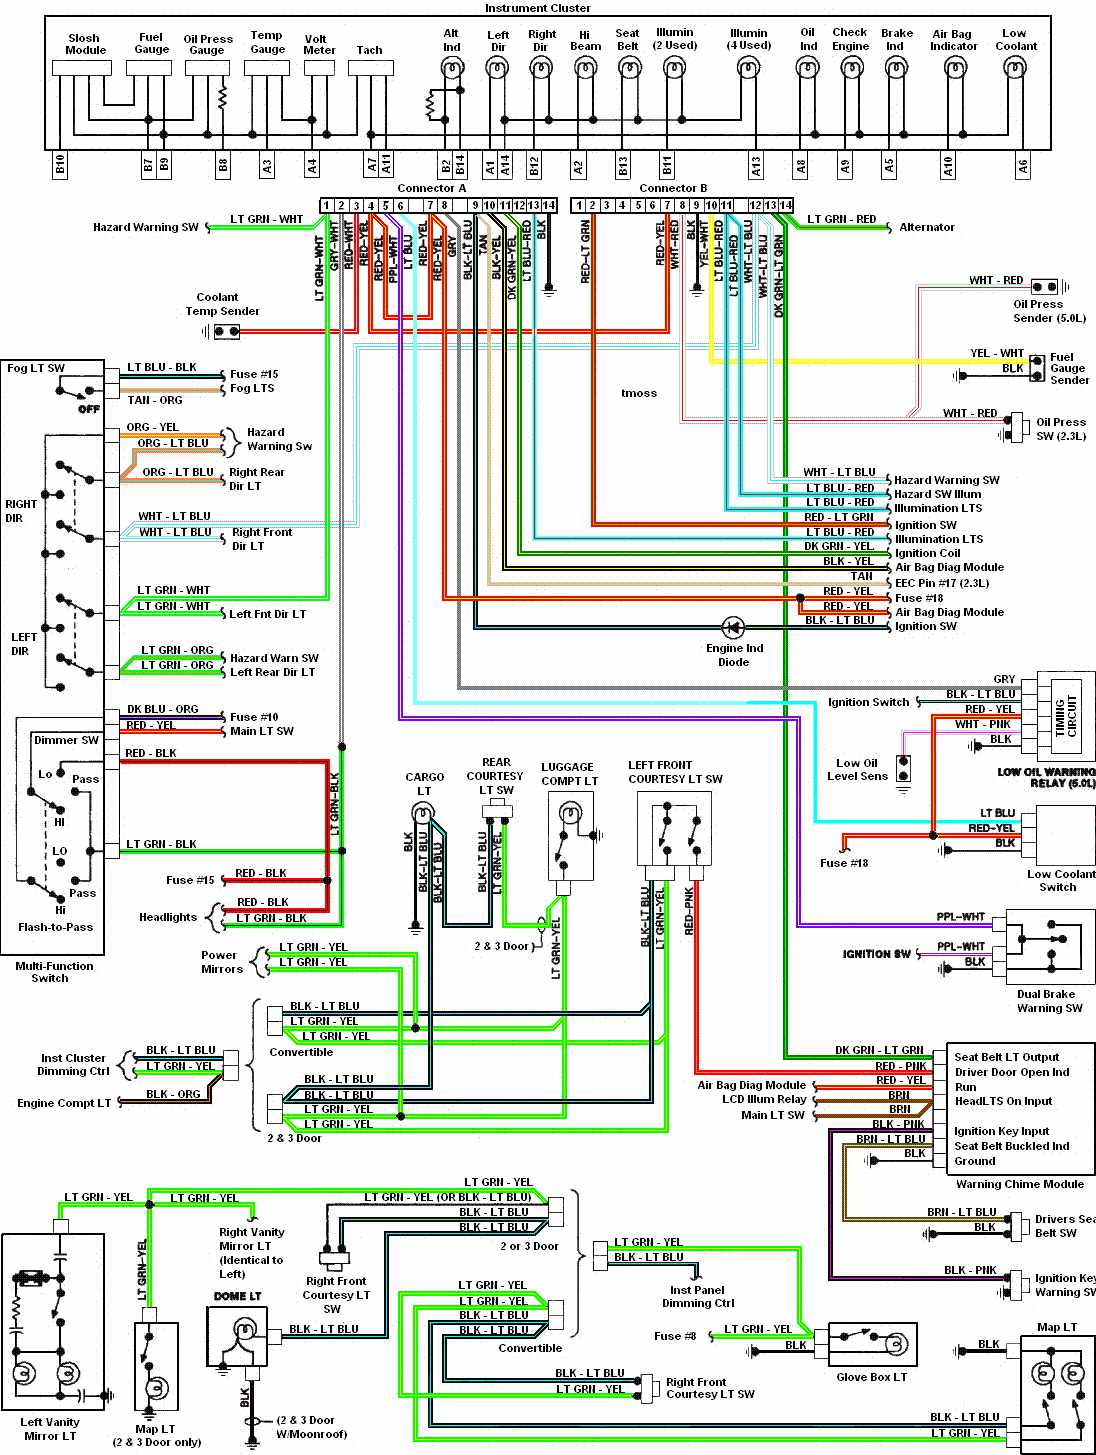 Instrument+Cluster+Wiring+Diagrams+Of+1987+Ford+Mustang+3rd+Generation 1985 ford radio wiring diagram 1983 ford radio wiring \u2022 wiring ford car radio wiring diagrams at aneh.co